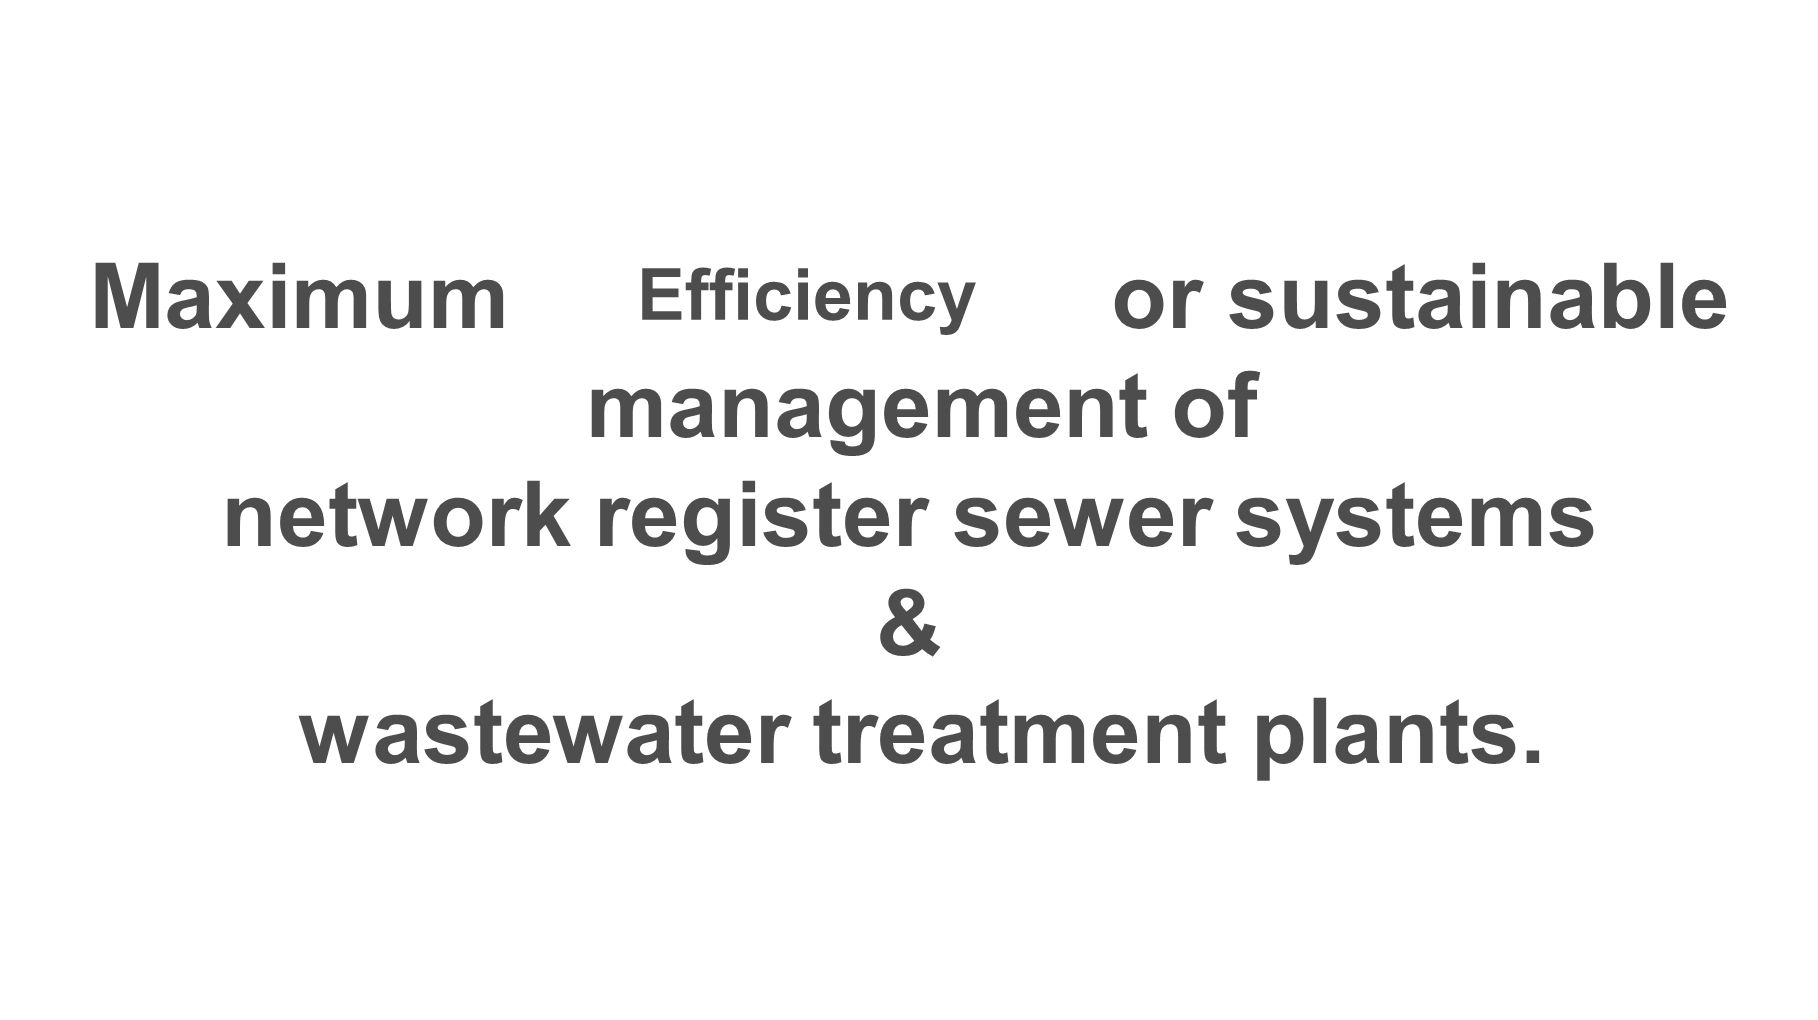 Maximum or sustainable management of network register sewer systems & wastewater treatment plants.